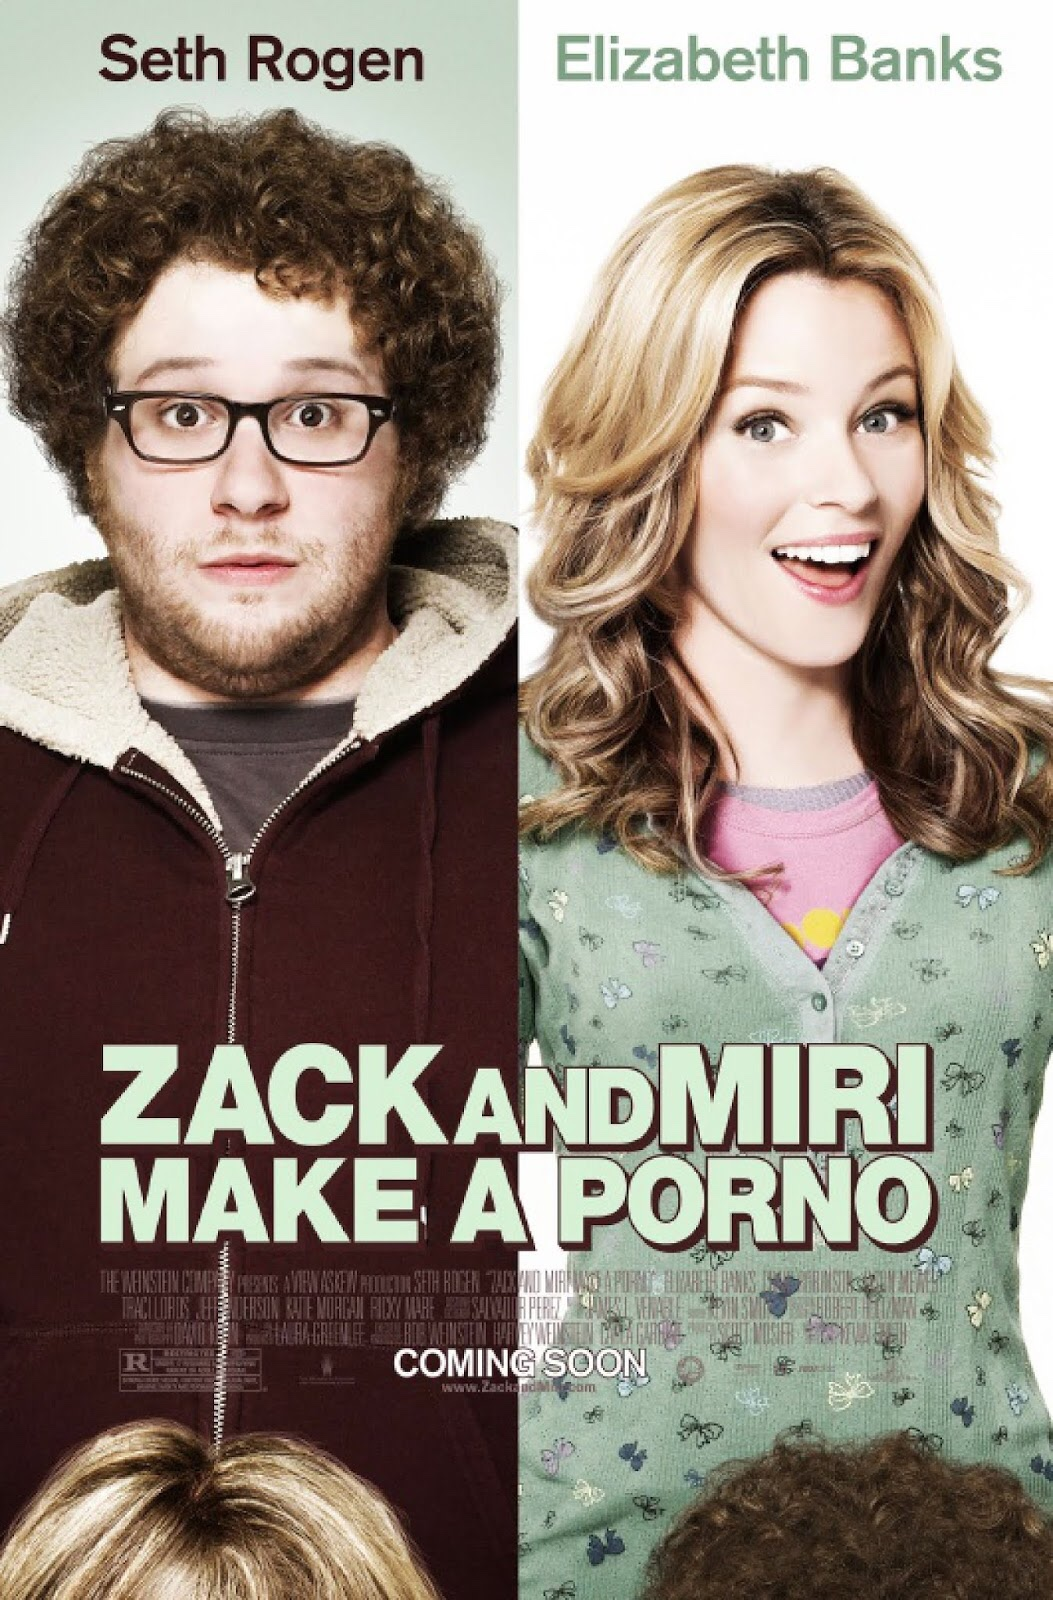 The poster for Zack and Miri make a porno, with Seth Rogen looking worried standing next to Elizabeth Banks who is looking coquettish